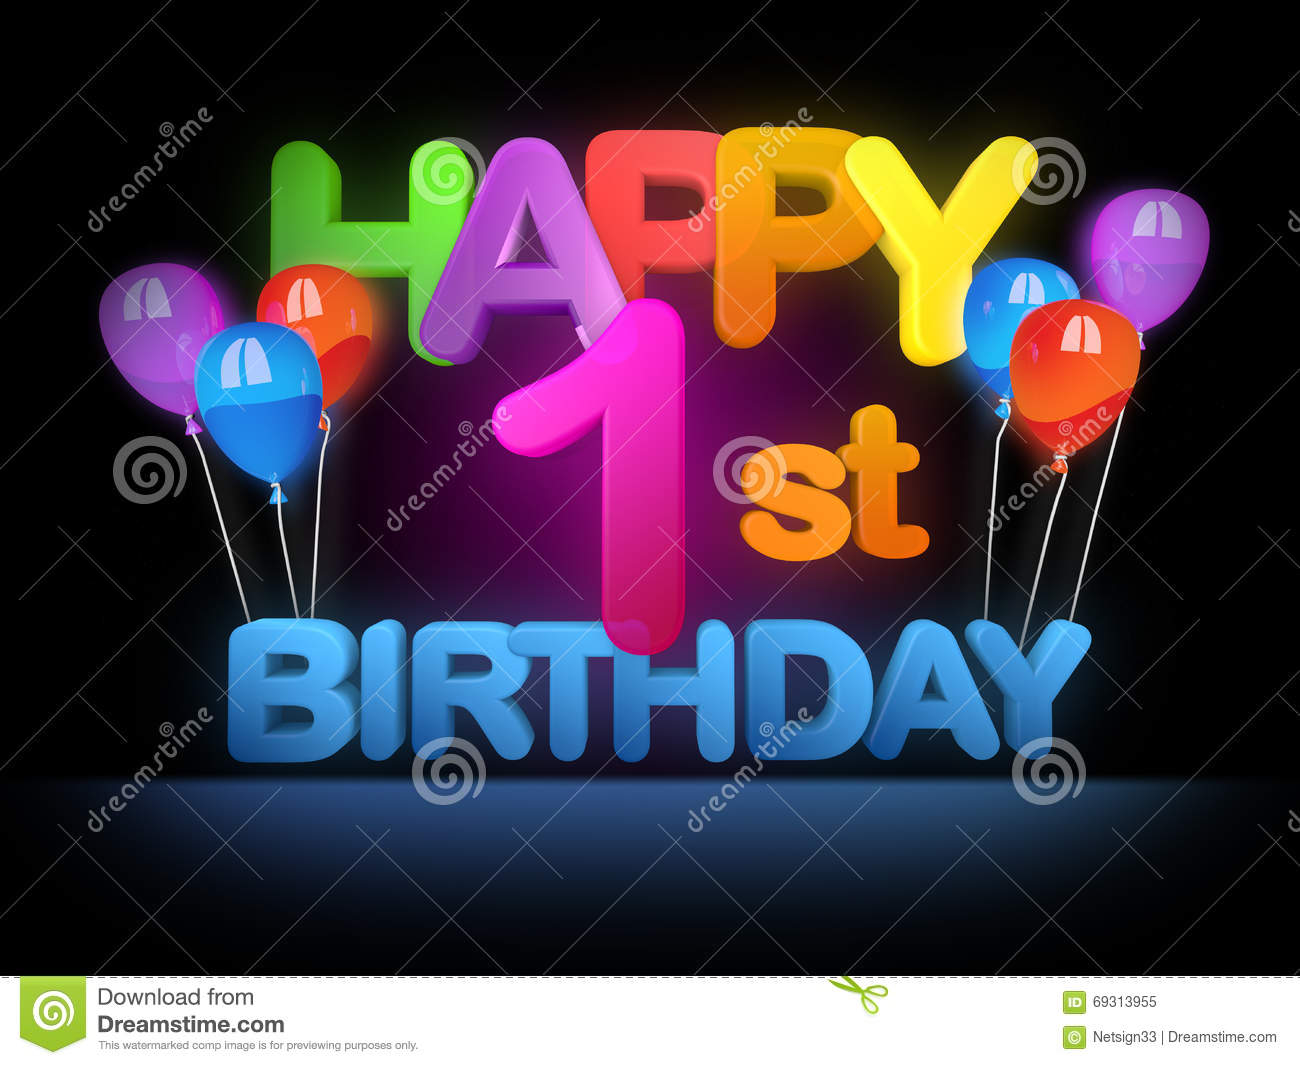 1st birthday background images ; happy-st-birthday-dark-title-big-letters-colourful-balloons-background-69313955